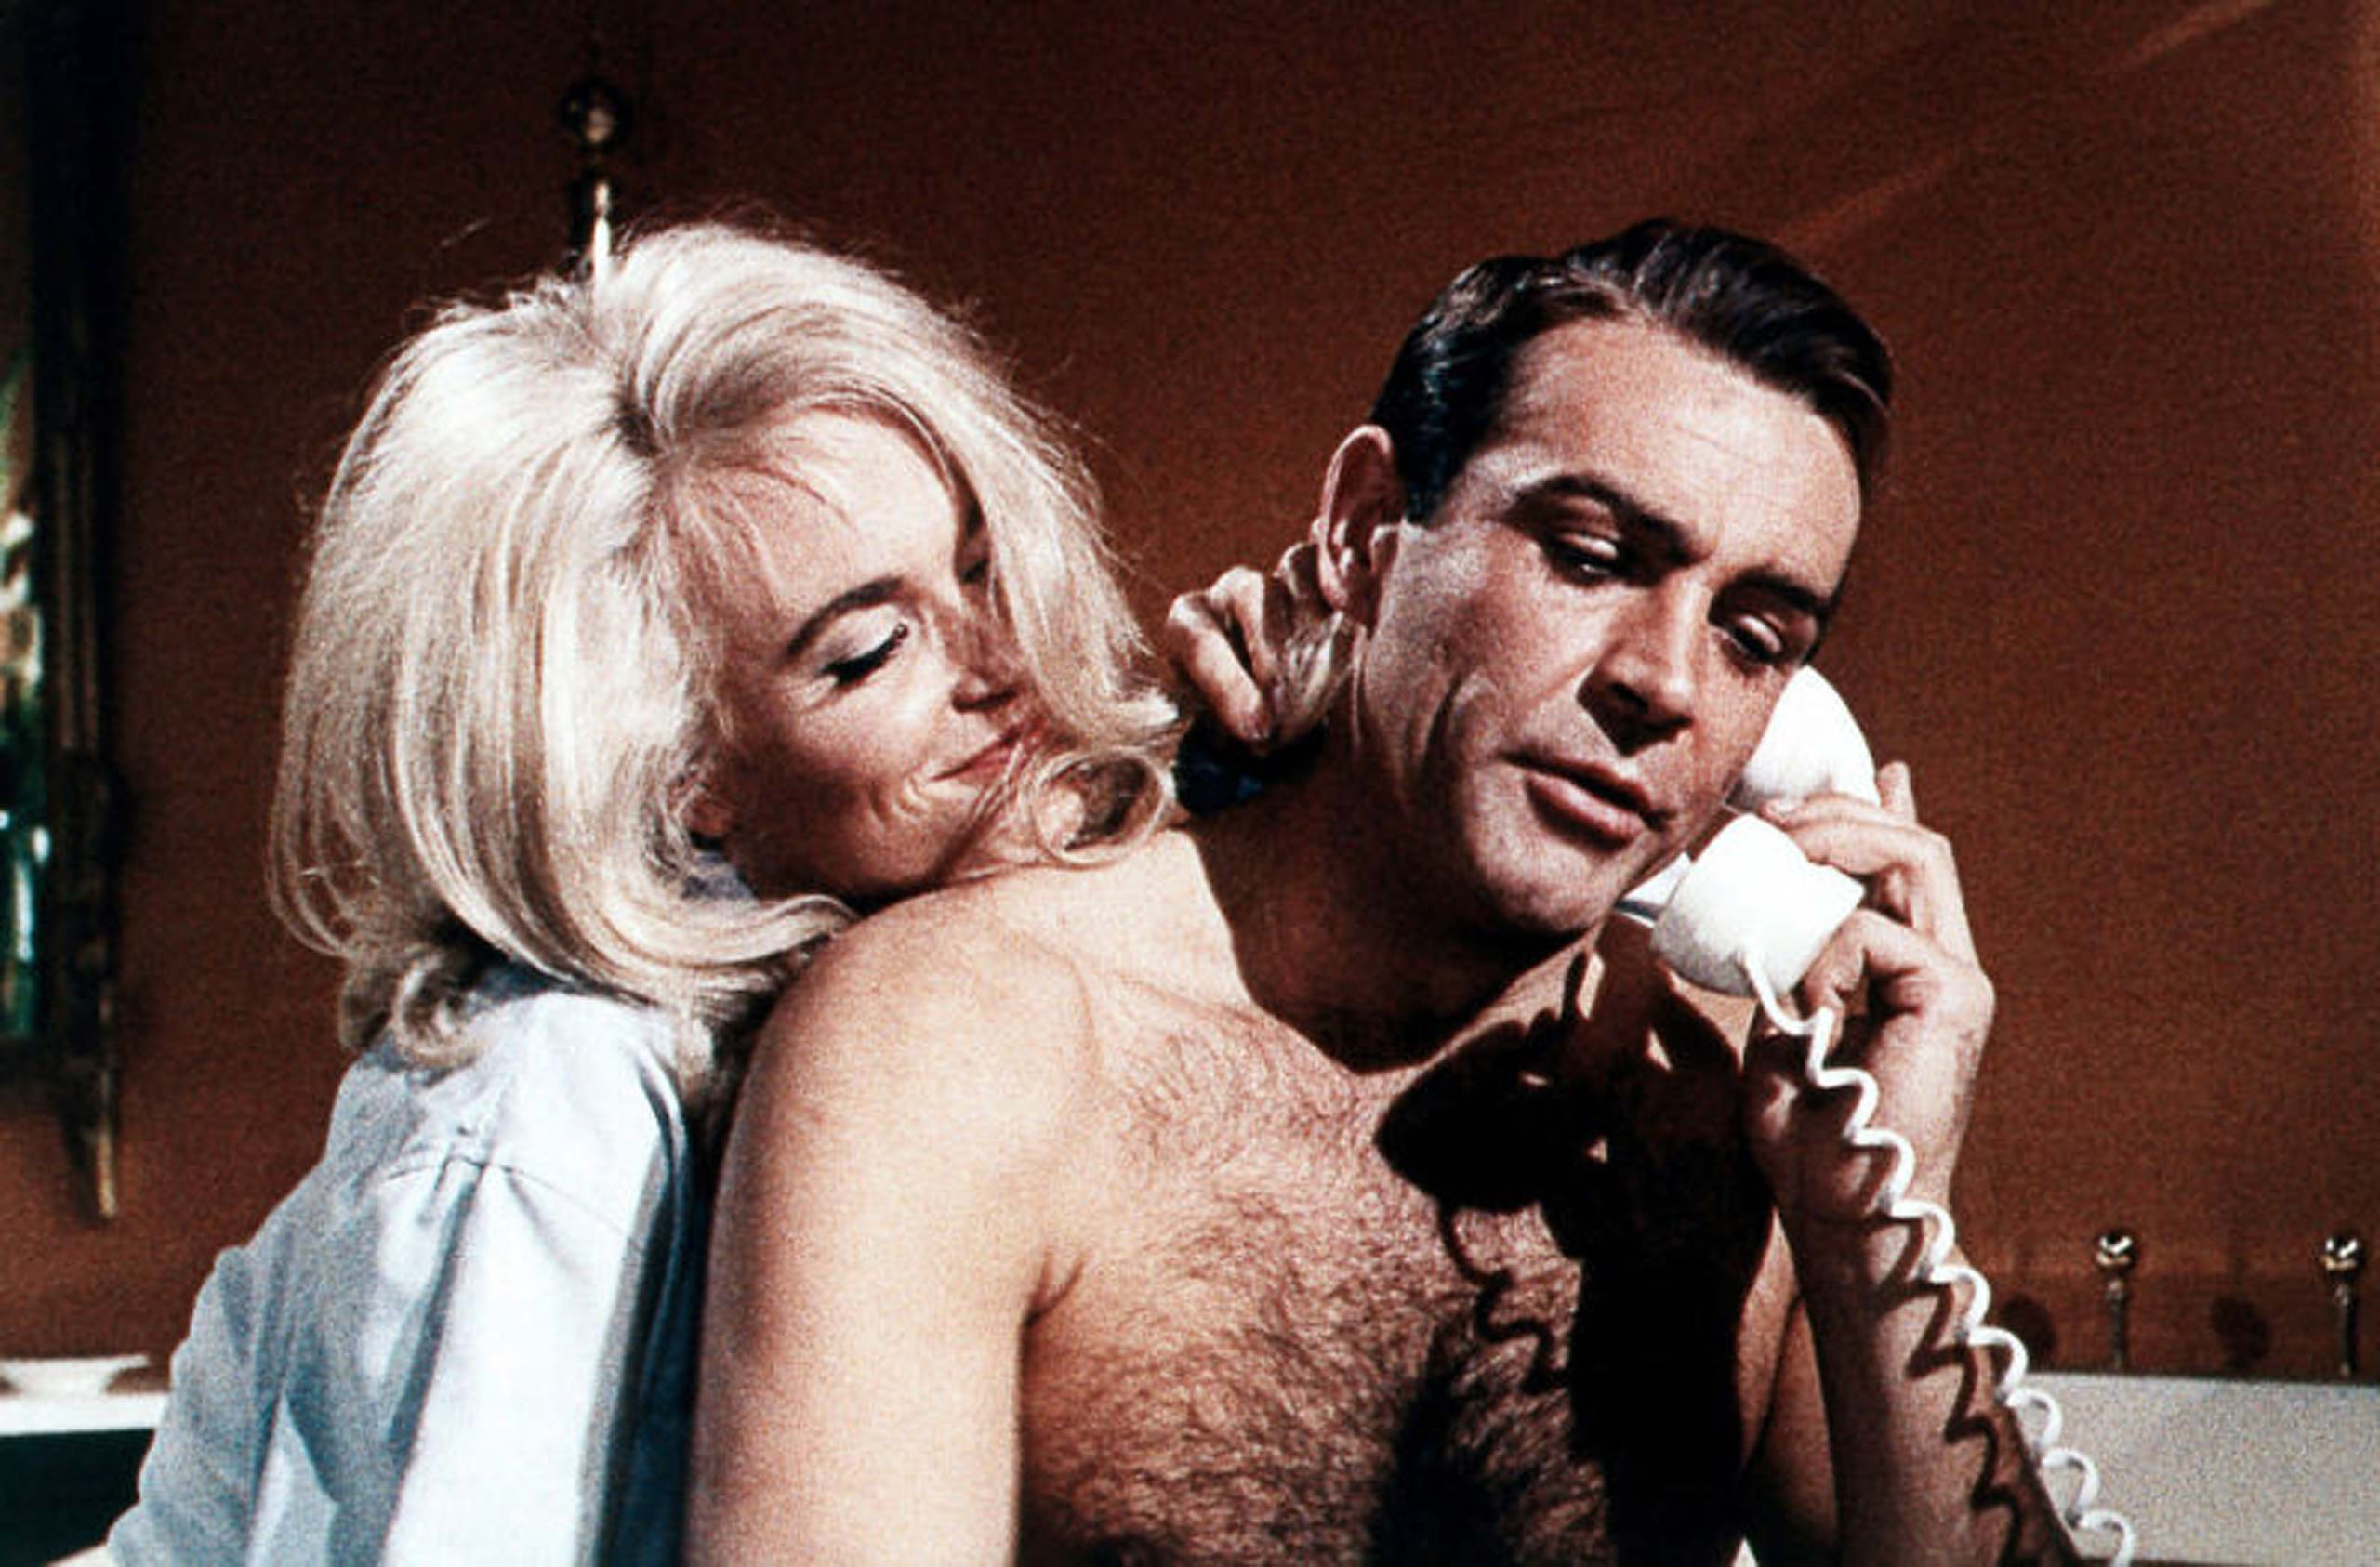 <strong><i>Goldfinger</i> (1964) - Sean Connery</strong>